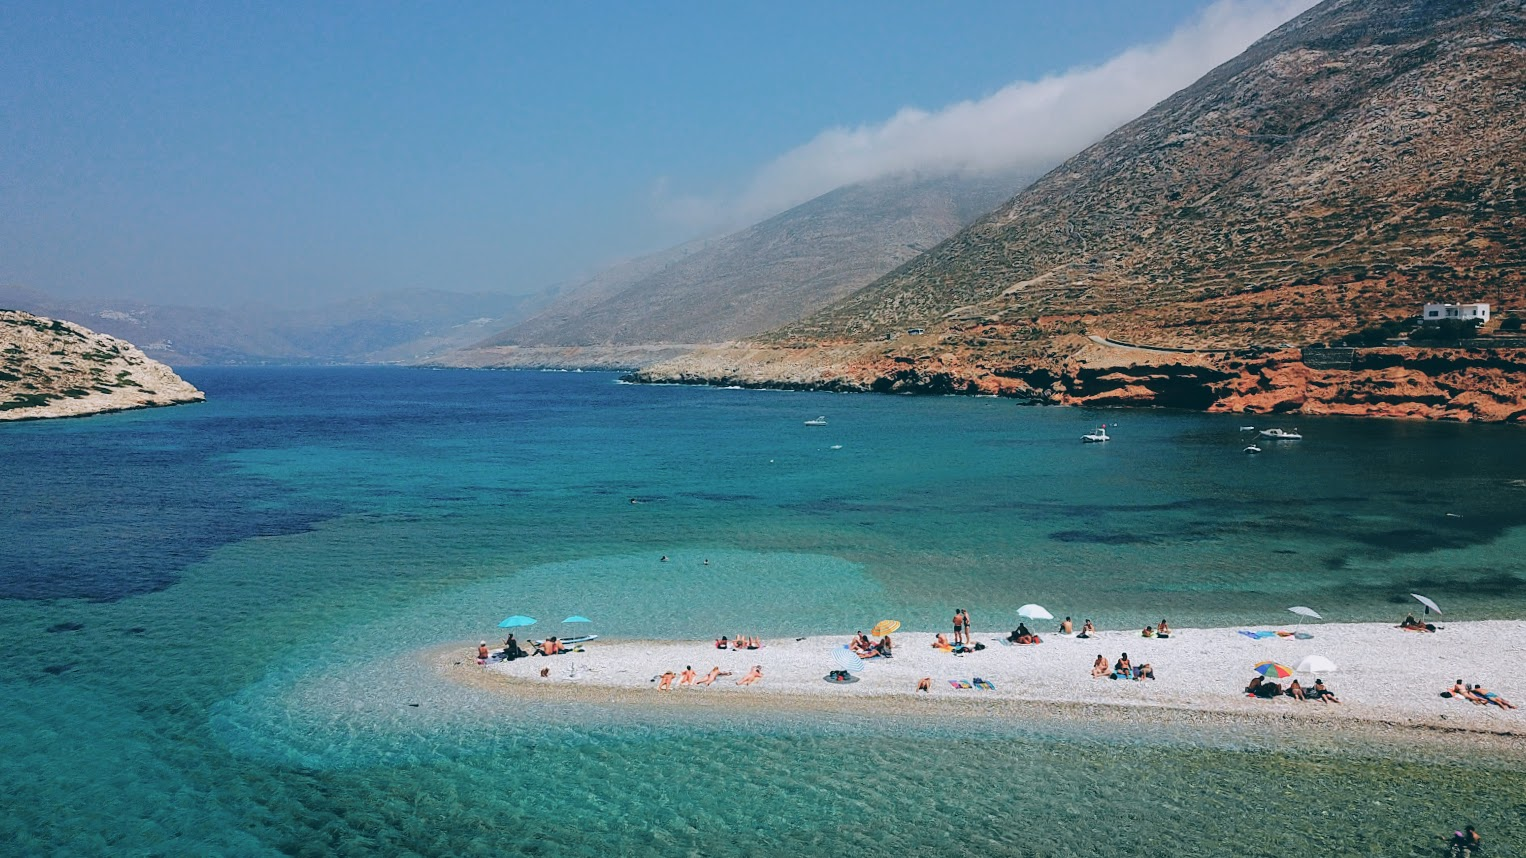 Going off the beaten path in beautiful Amorgos